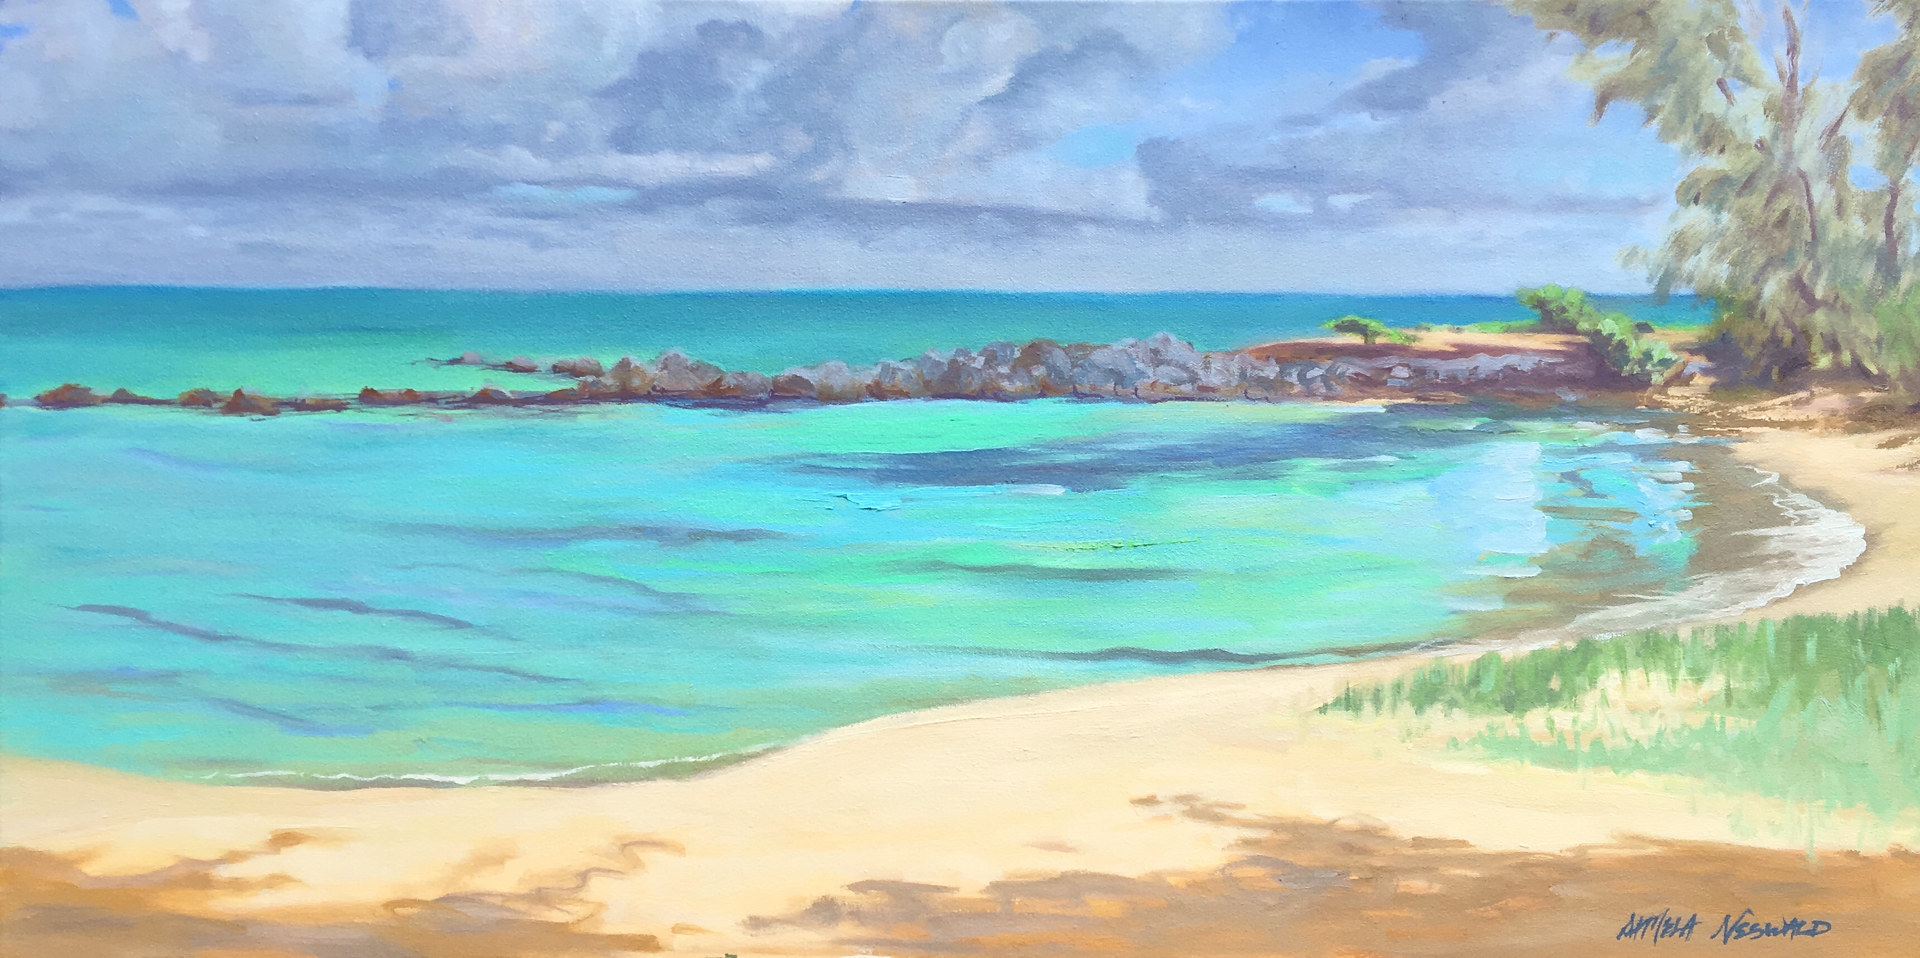 Oil painting Kaʻa Point by Pamela Neswald